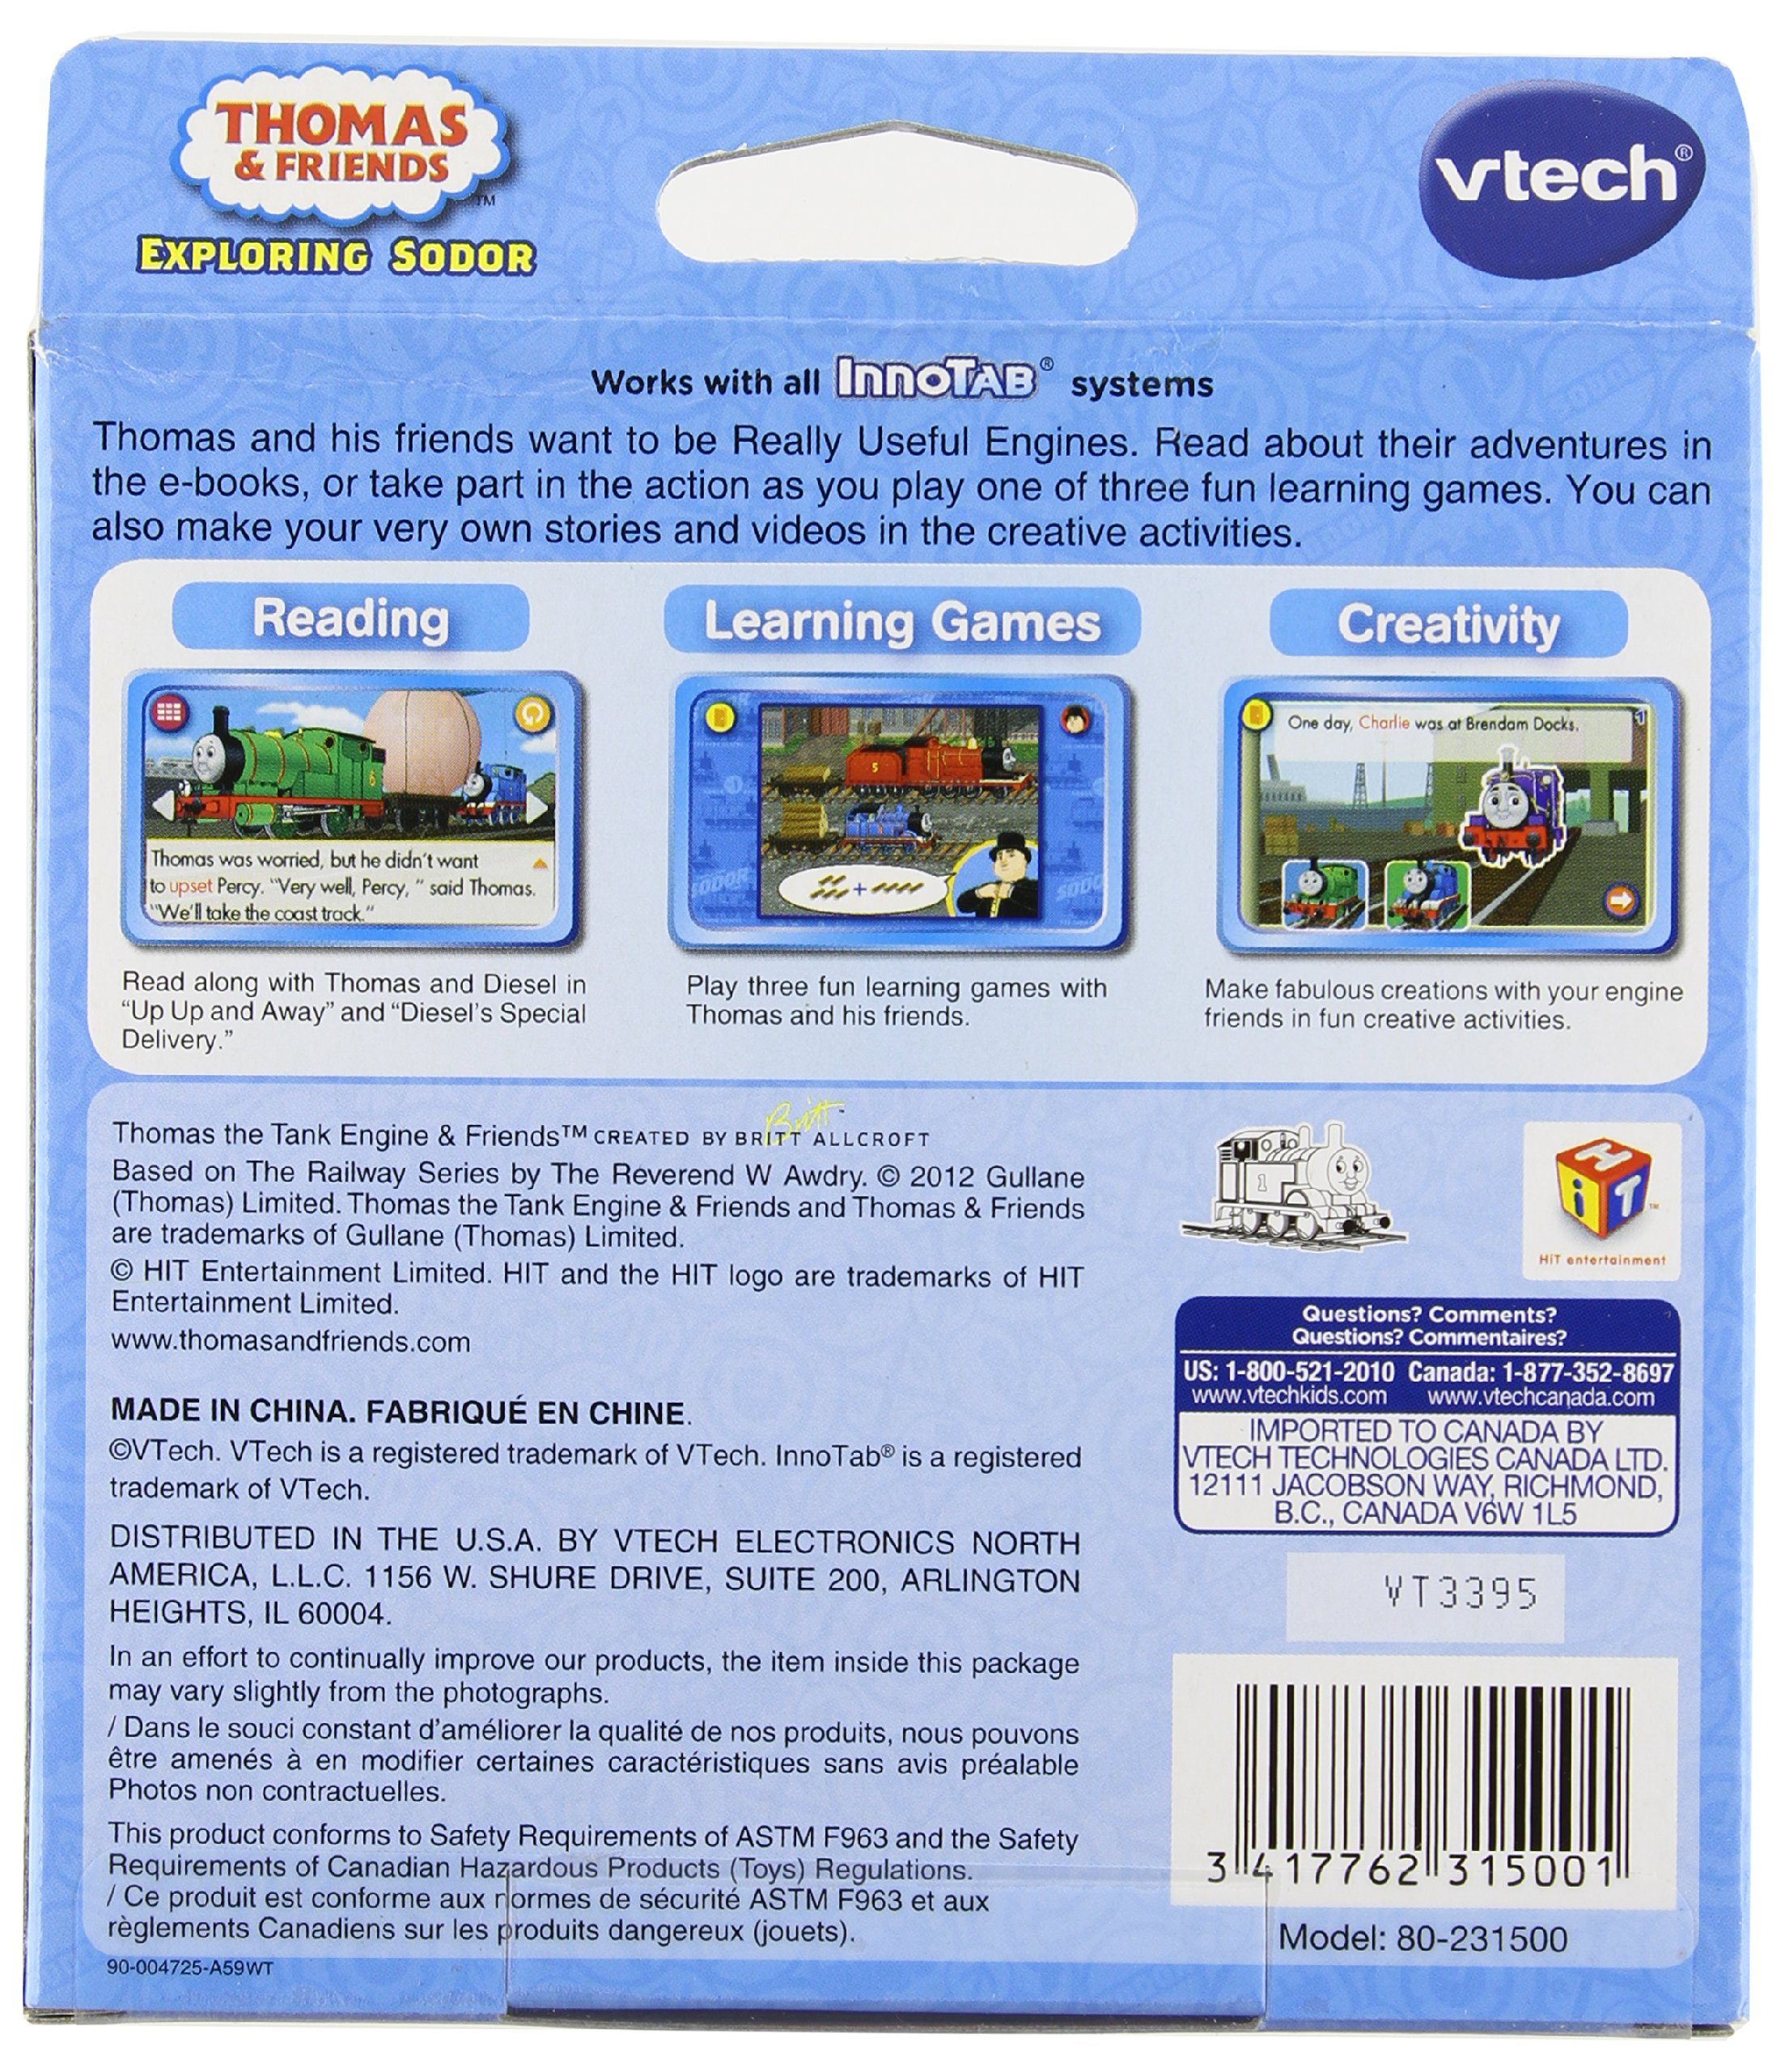 VTech InnoTab Software - Thomas & Friends by VTech (Image #2)